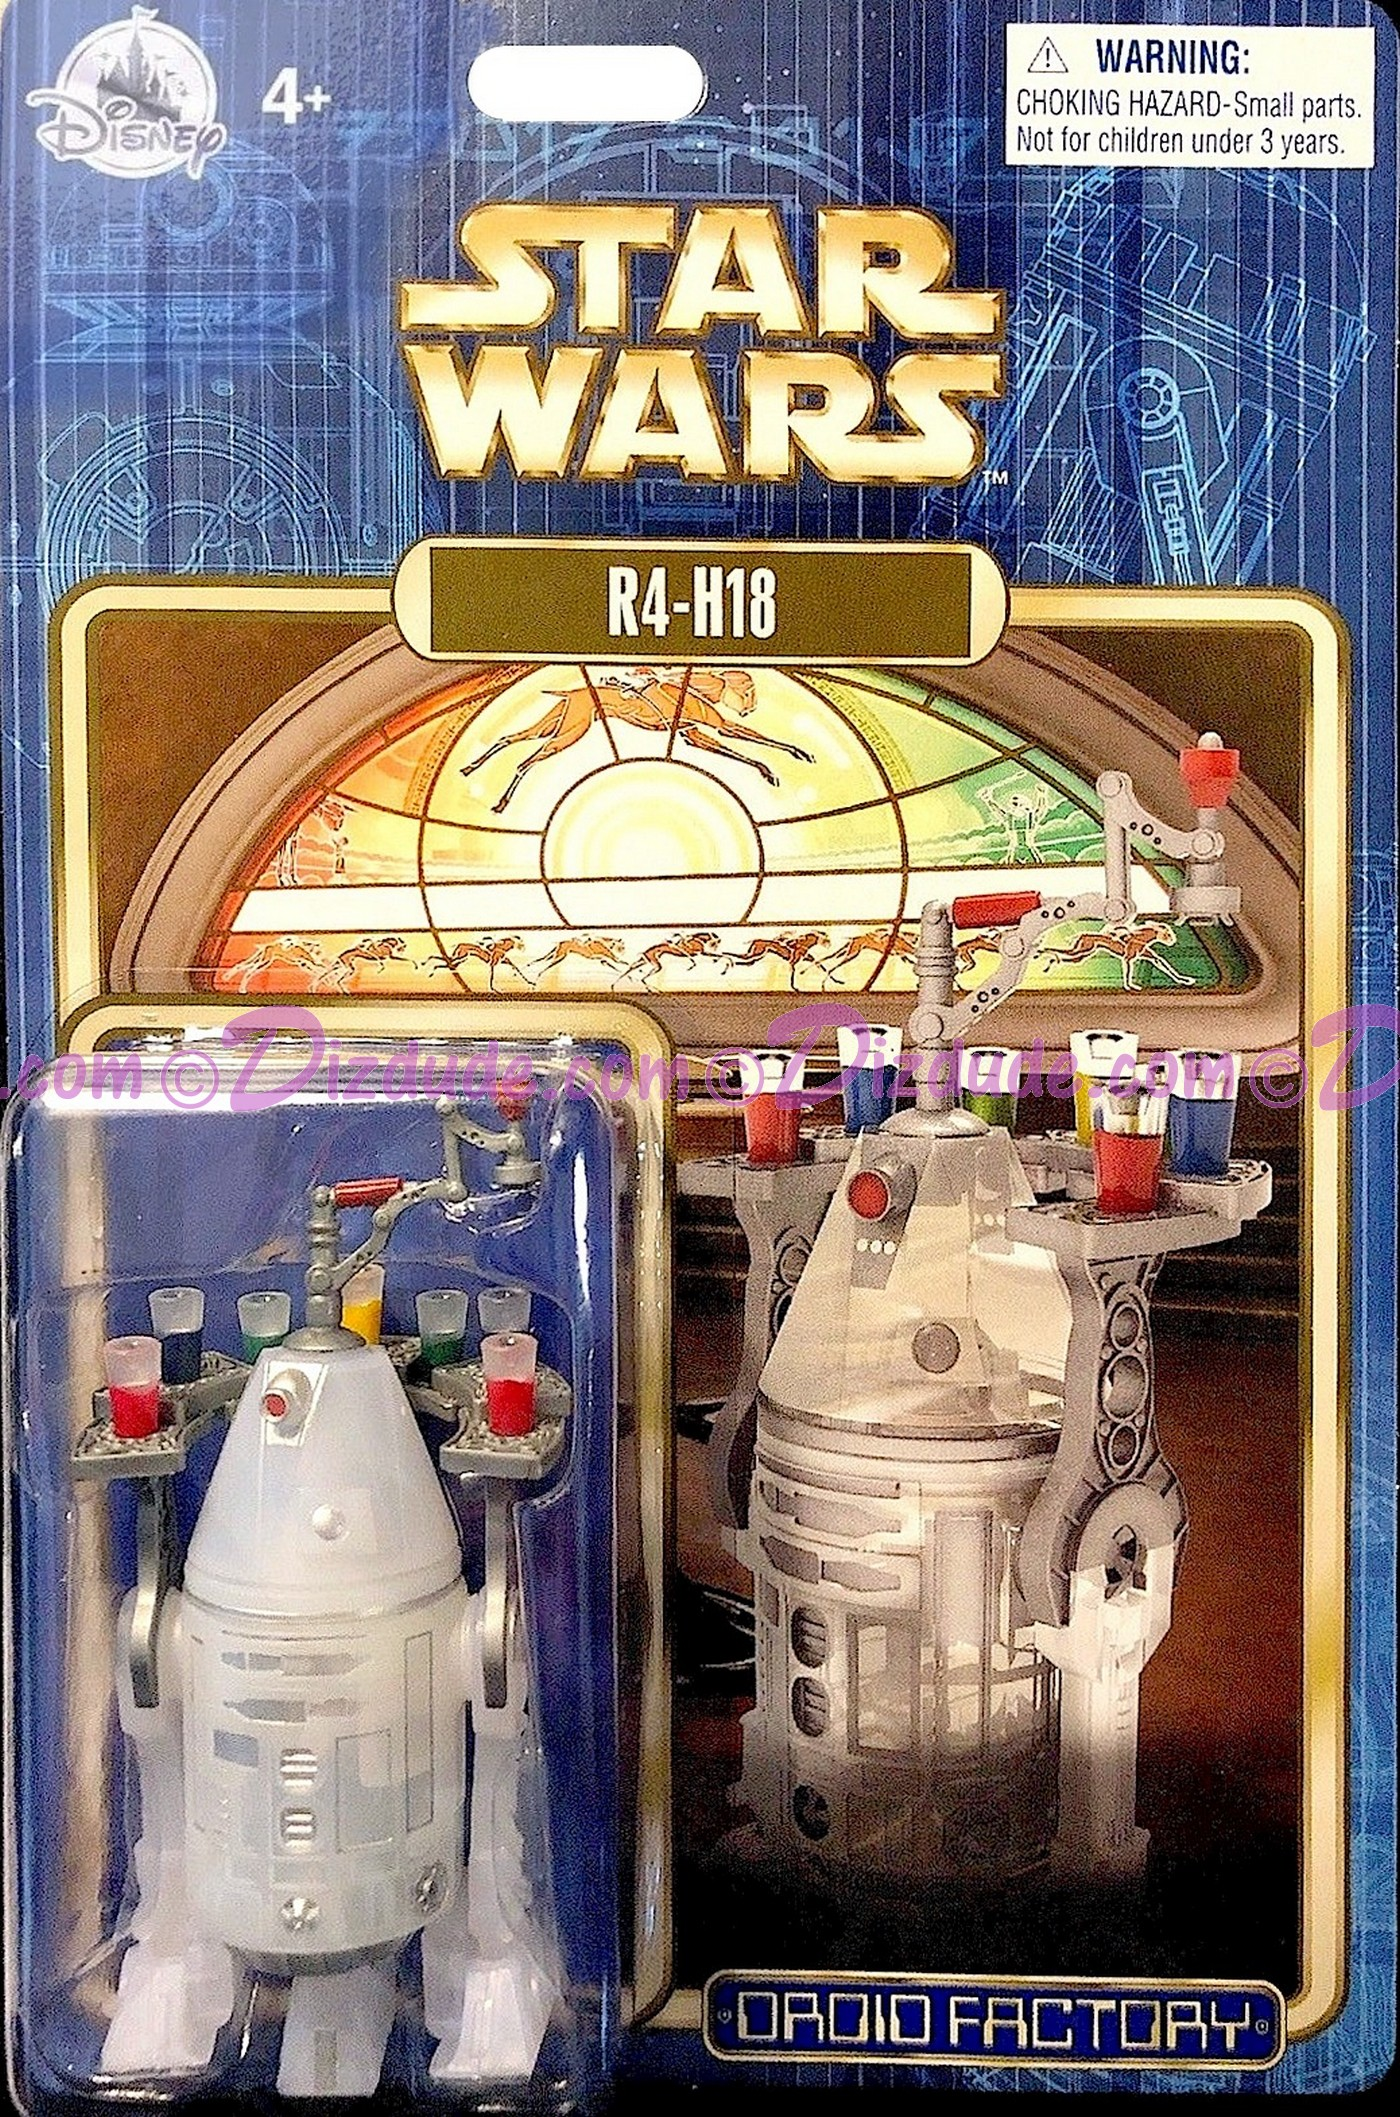 Star Wars R4-H18 Astromech Droid - Disney World DROID FACTORY Action Figures 3¾ Inch - Limited Release © Dizdude.com